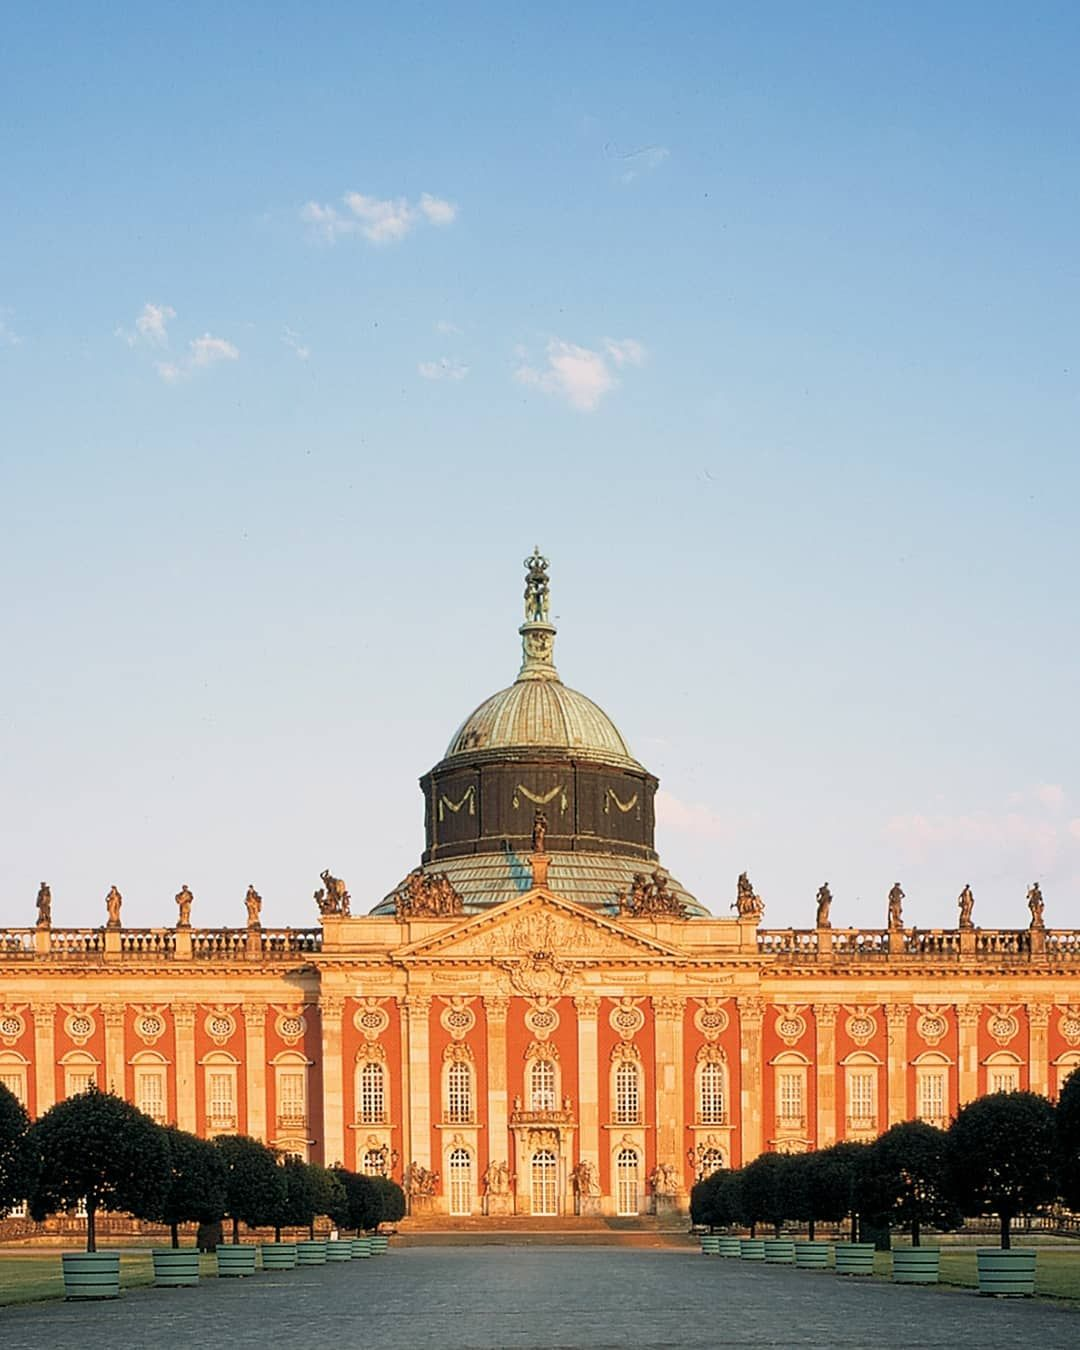 The New Palace Is Located In Potsdam In The Park Of Sanssouci The New Palace Or Neues Palais In German Is The Largest Prussian New Palace Palace Potsdam